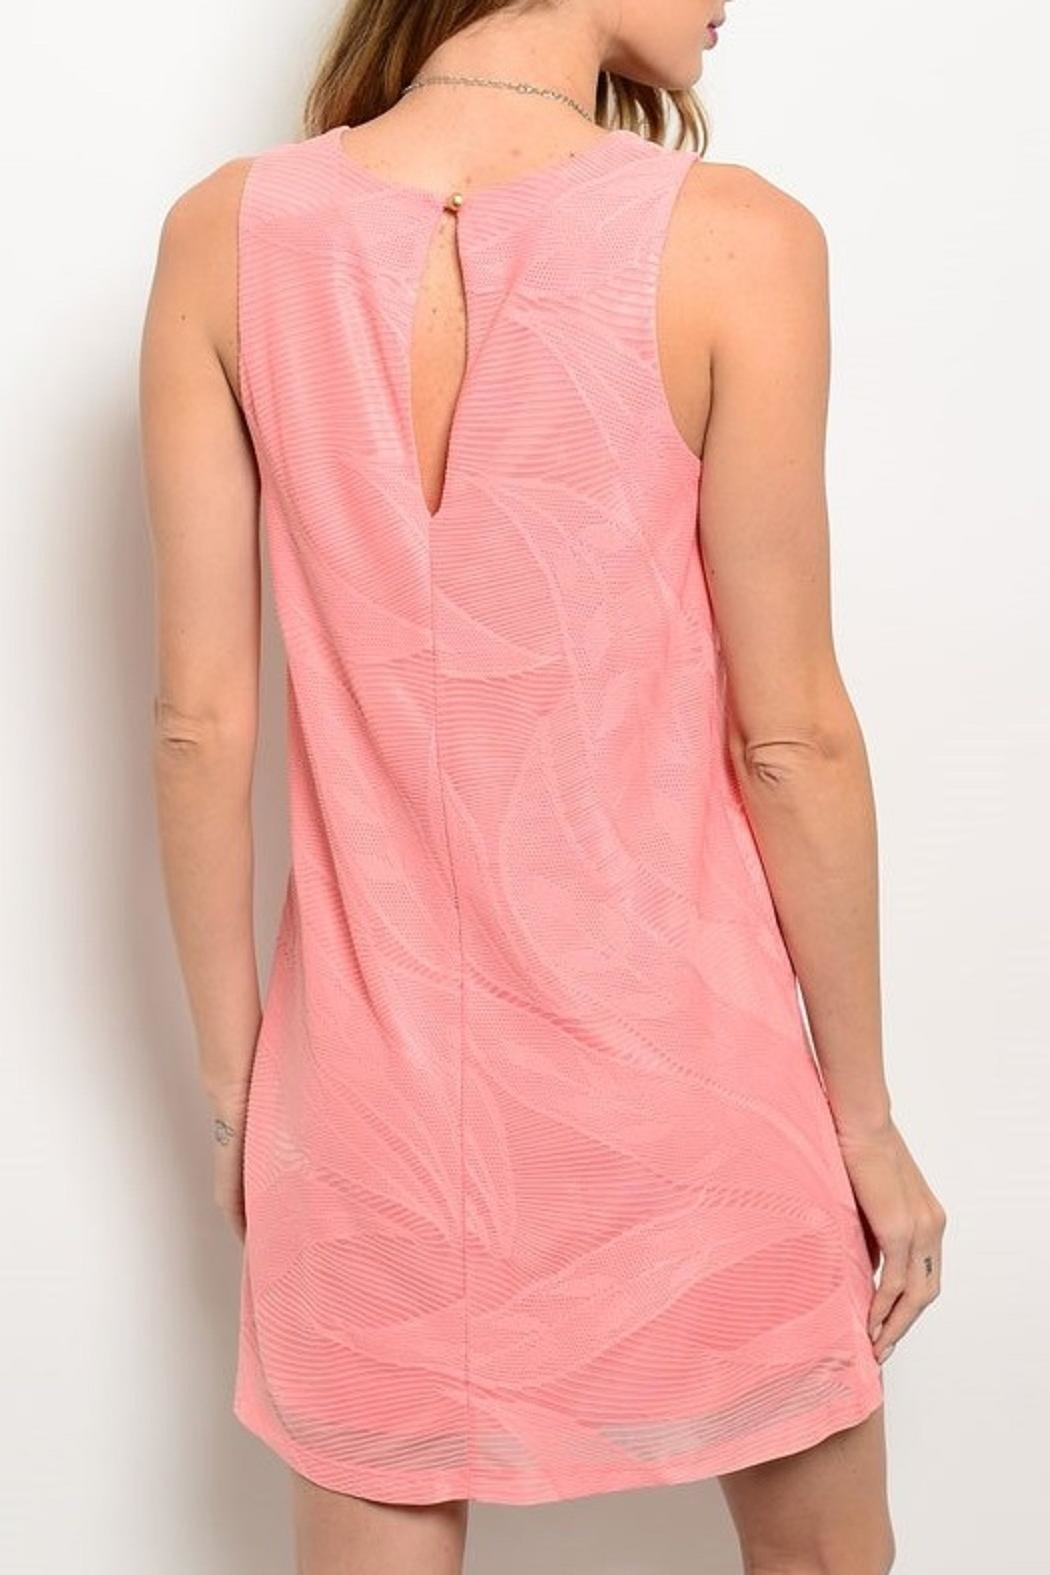 Adore Clothes & More Coral Summer Dress - Front Full Image